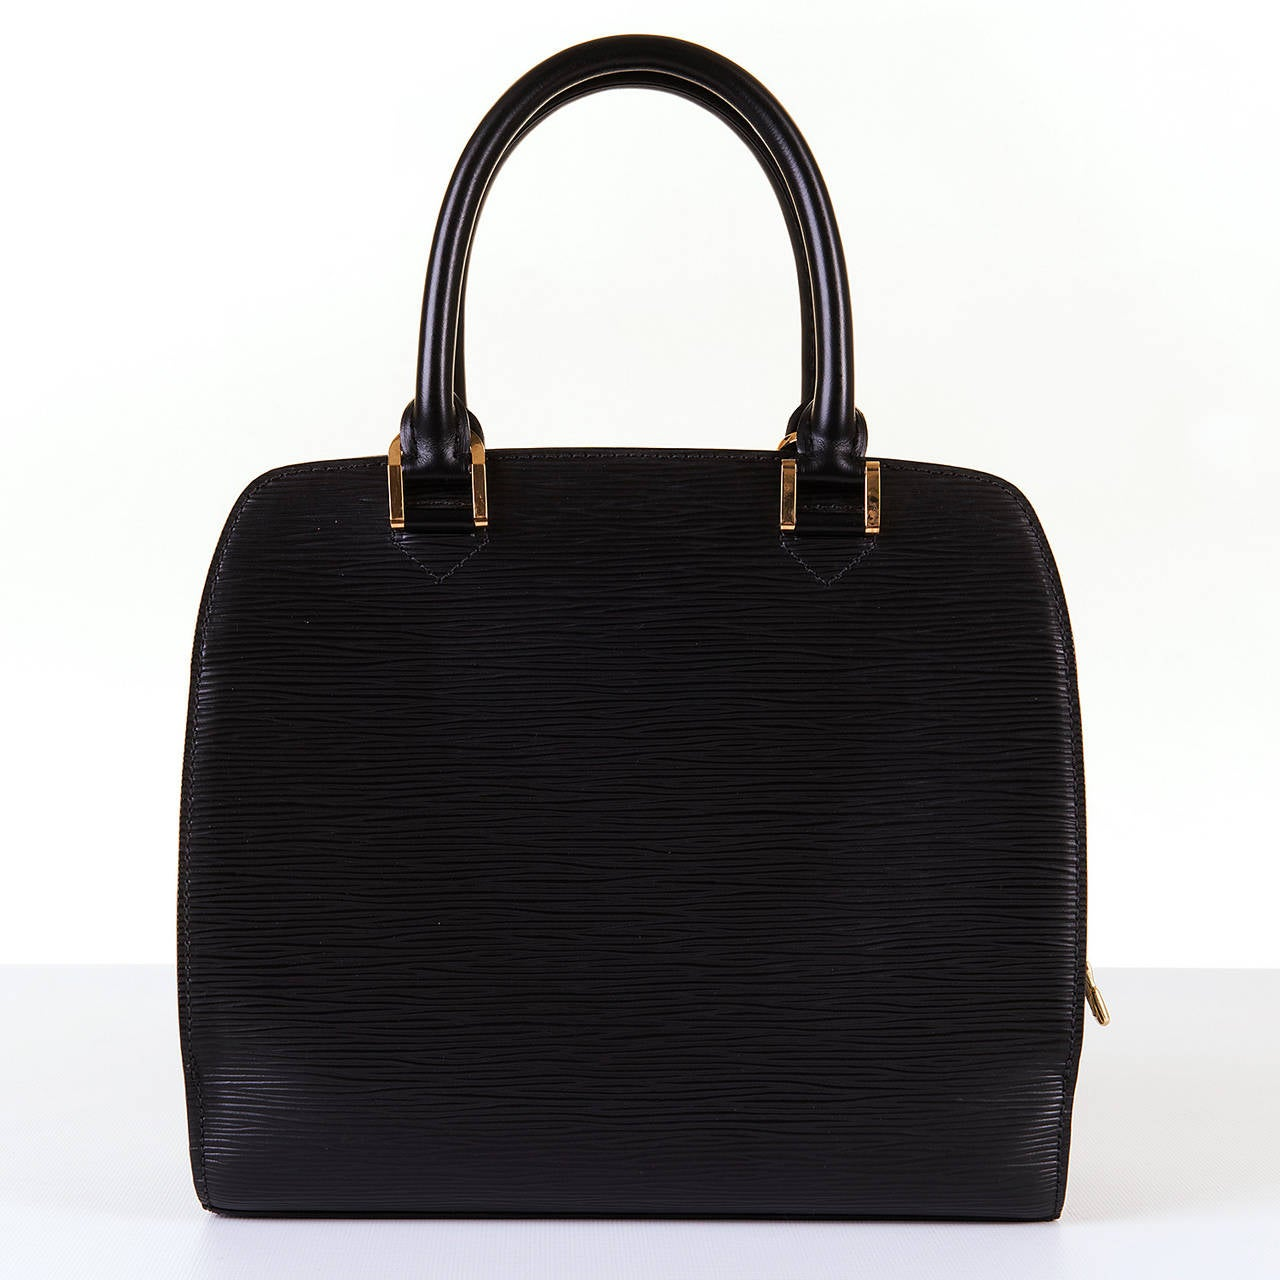 A Super Louis Vuitton 'Pont-Neuf' 25cm Black Epi Bag 2